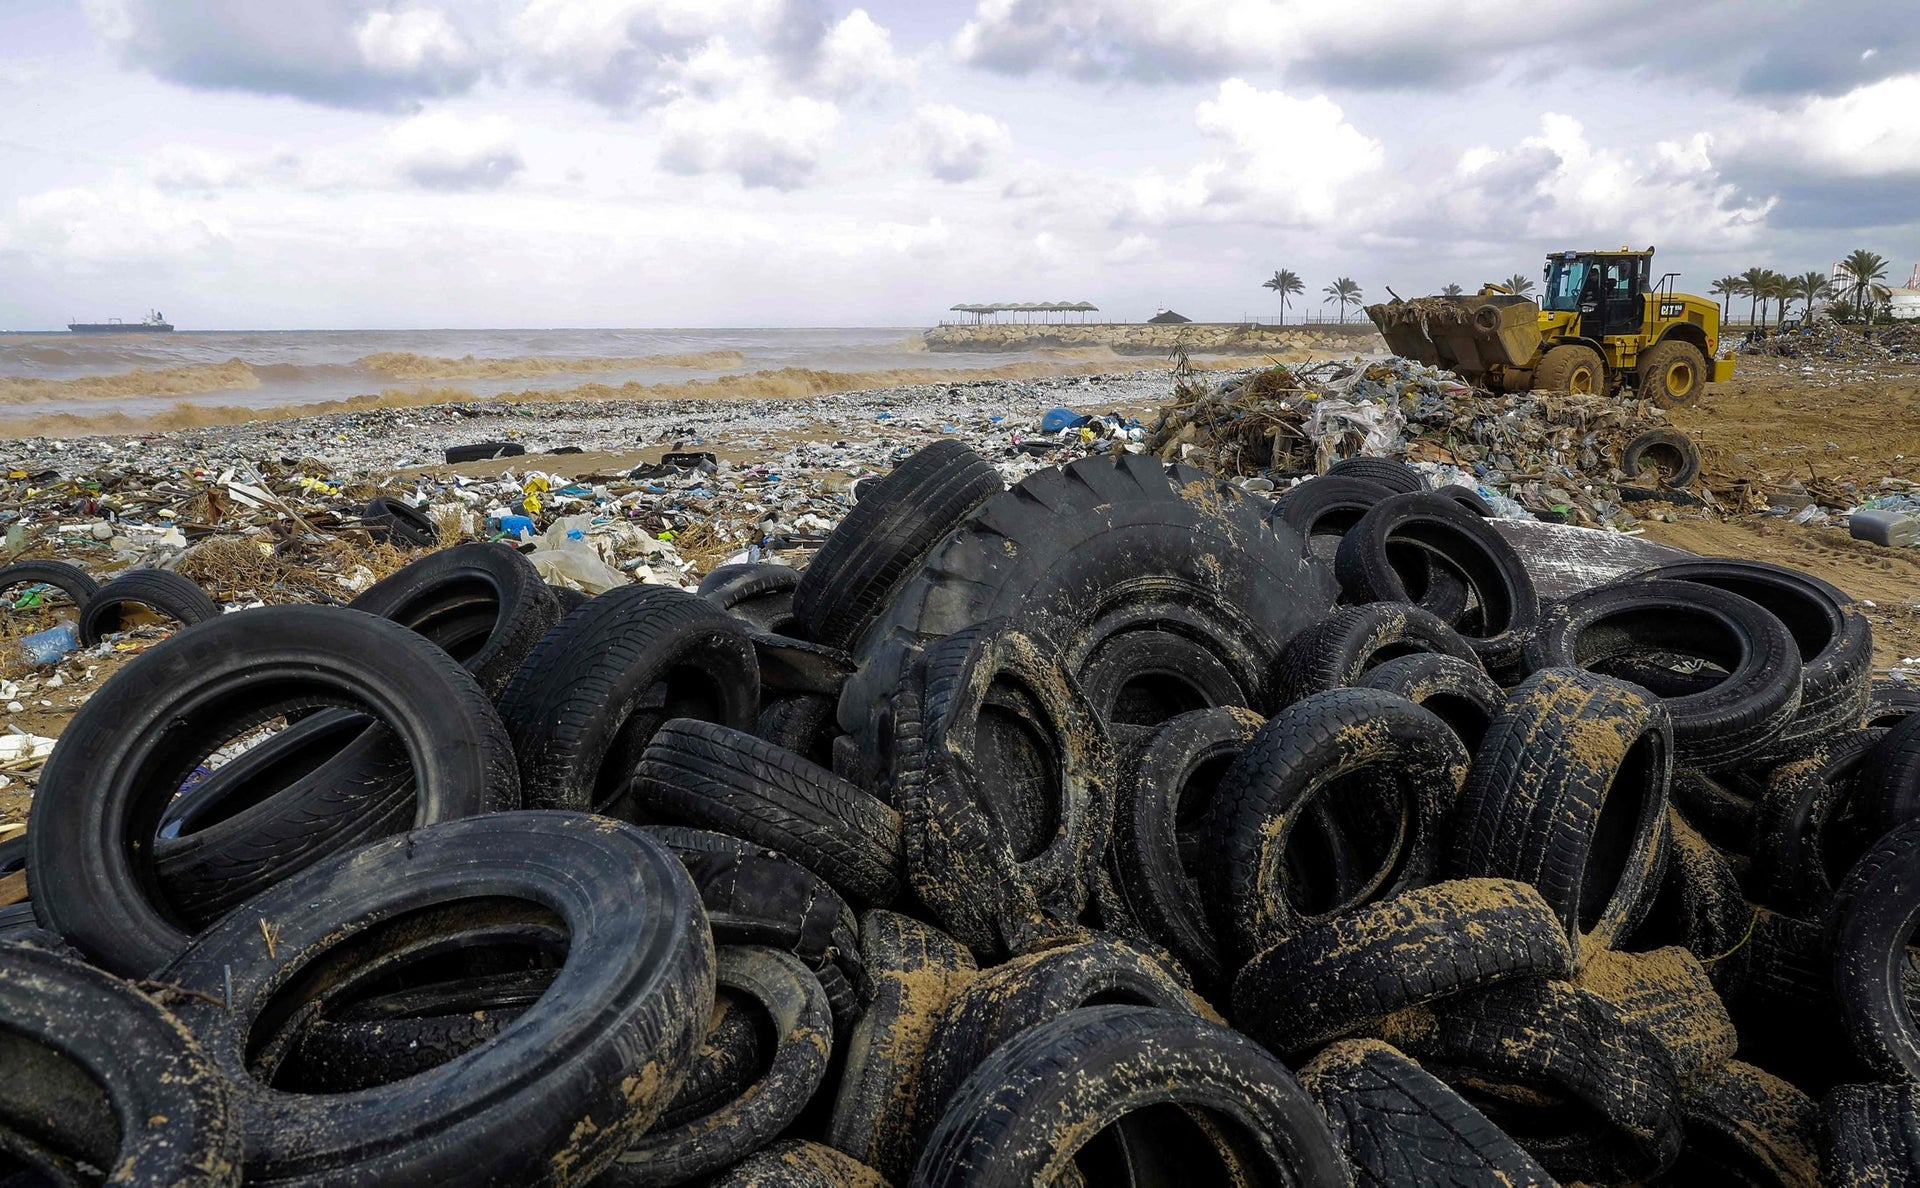 A picture taken on January 23, 2018 shows tires piled up on the beach of the coastal town of Zouk Mosbeh, north of Beirut, as garbage and waste cover the area after having washed and piled along the shore following stormy weather.